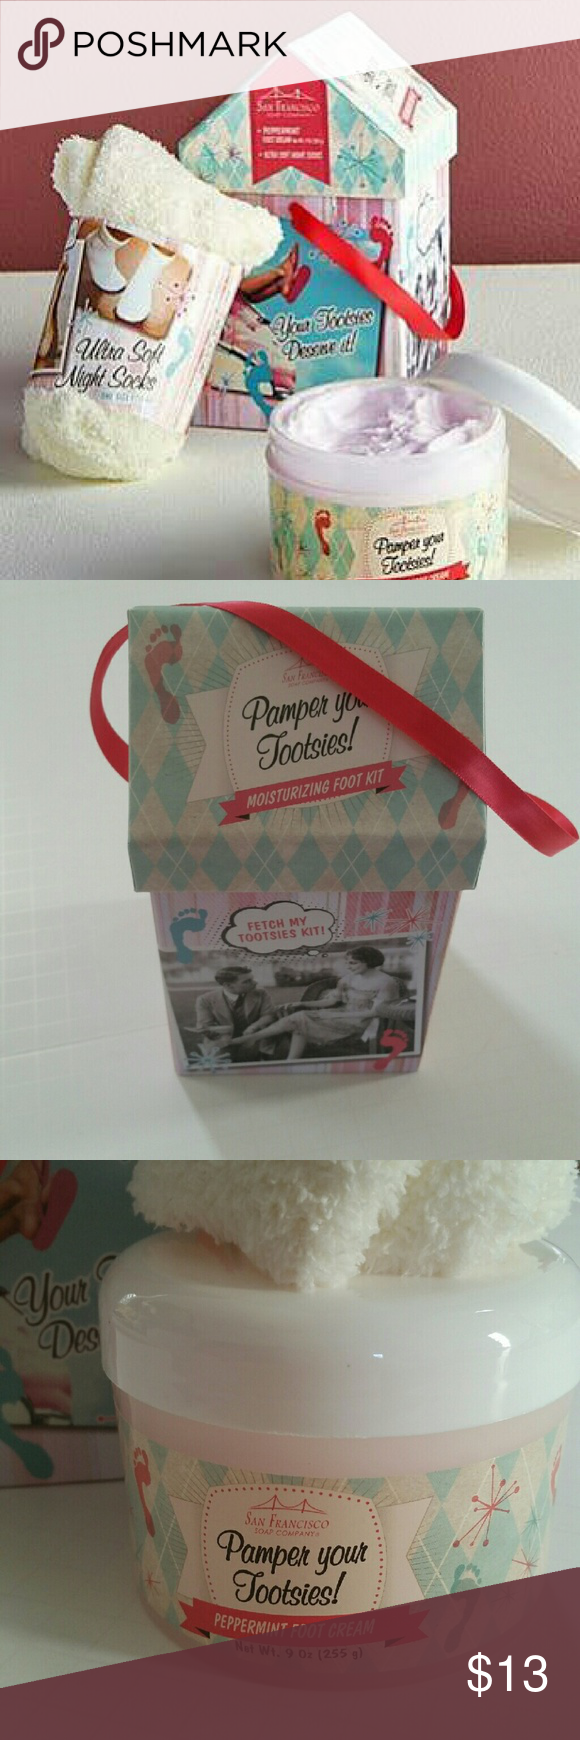 Pamper your tootsies gift set nwt Peppermint scent, Gift